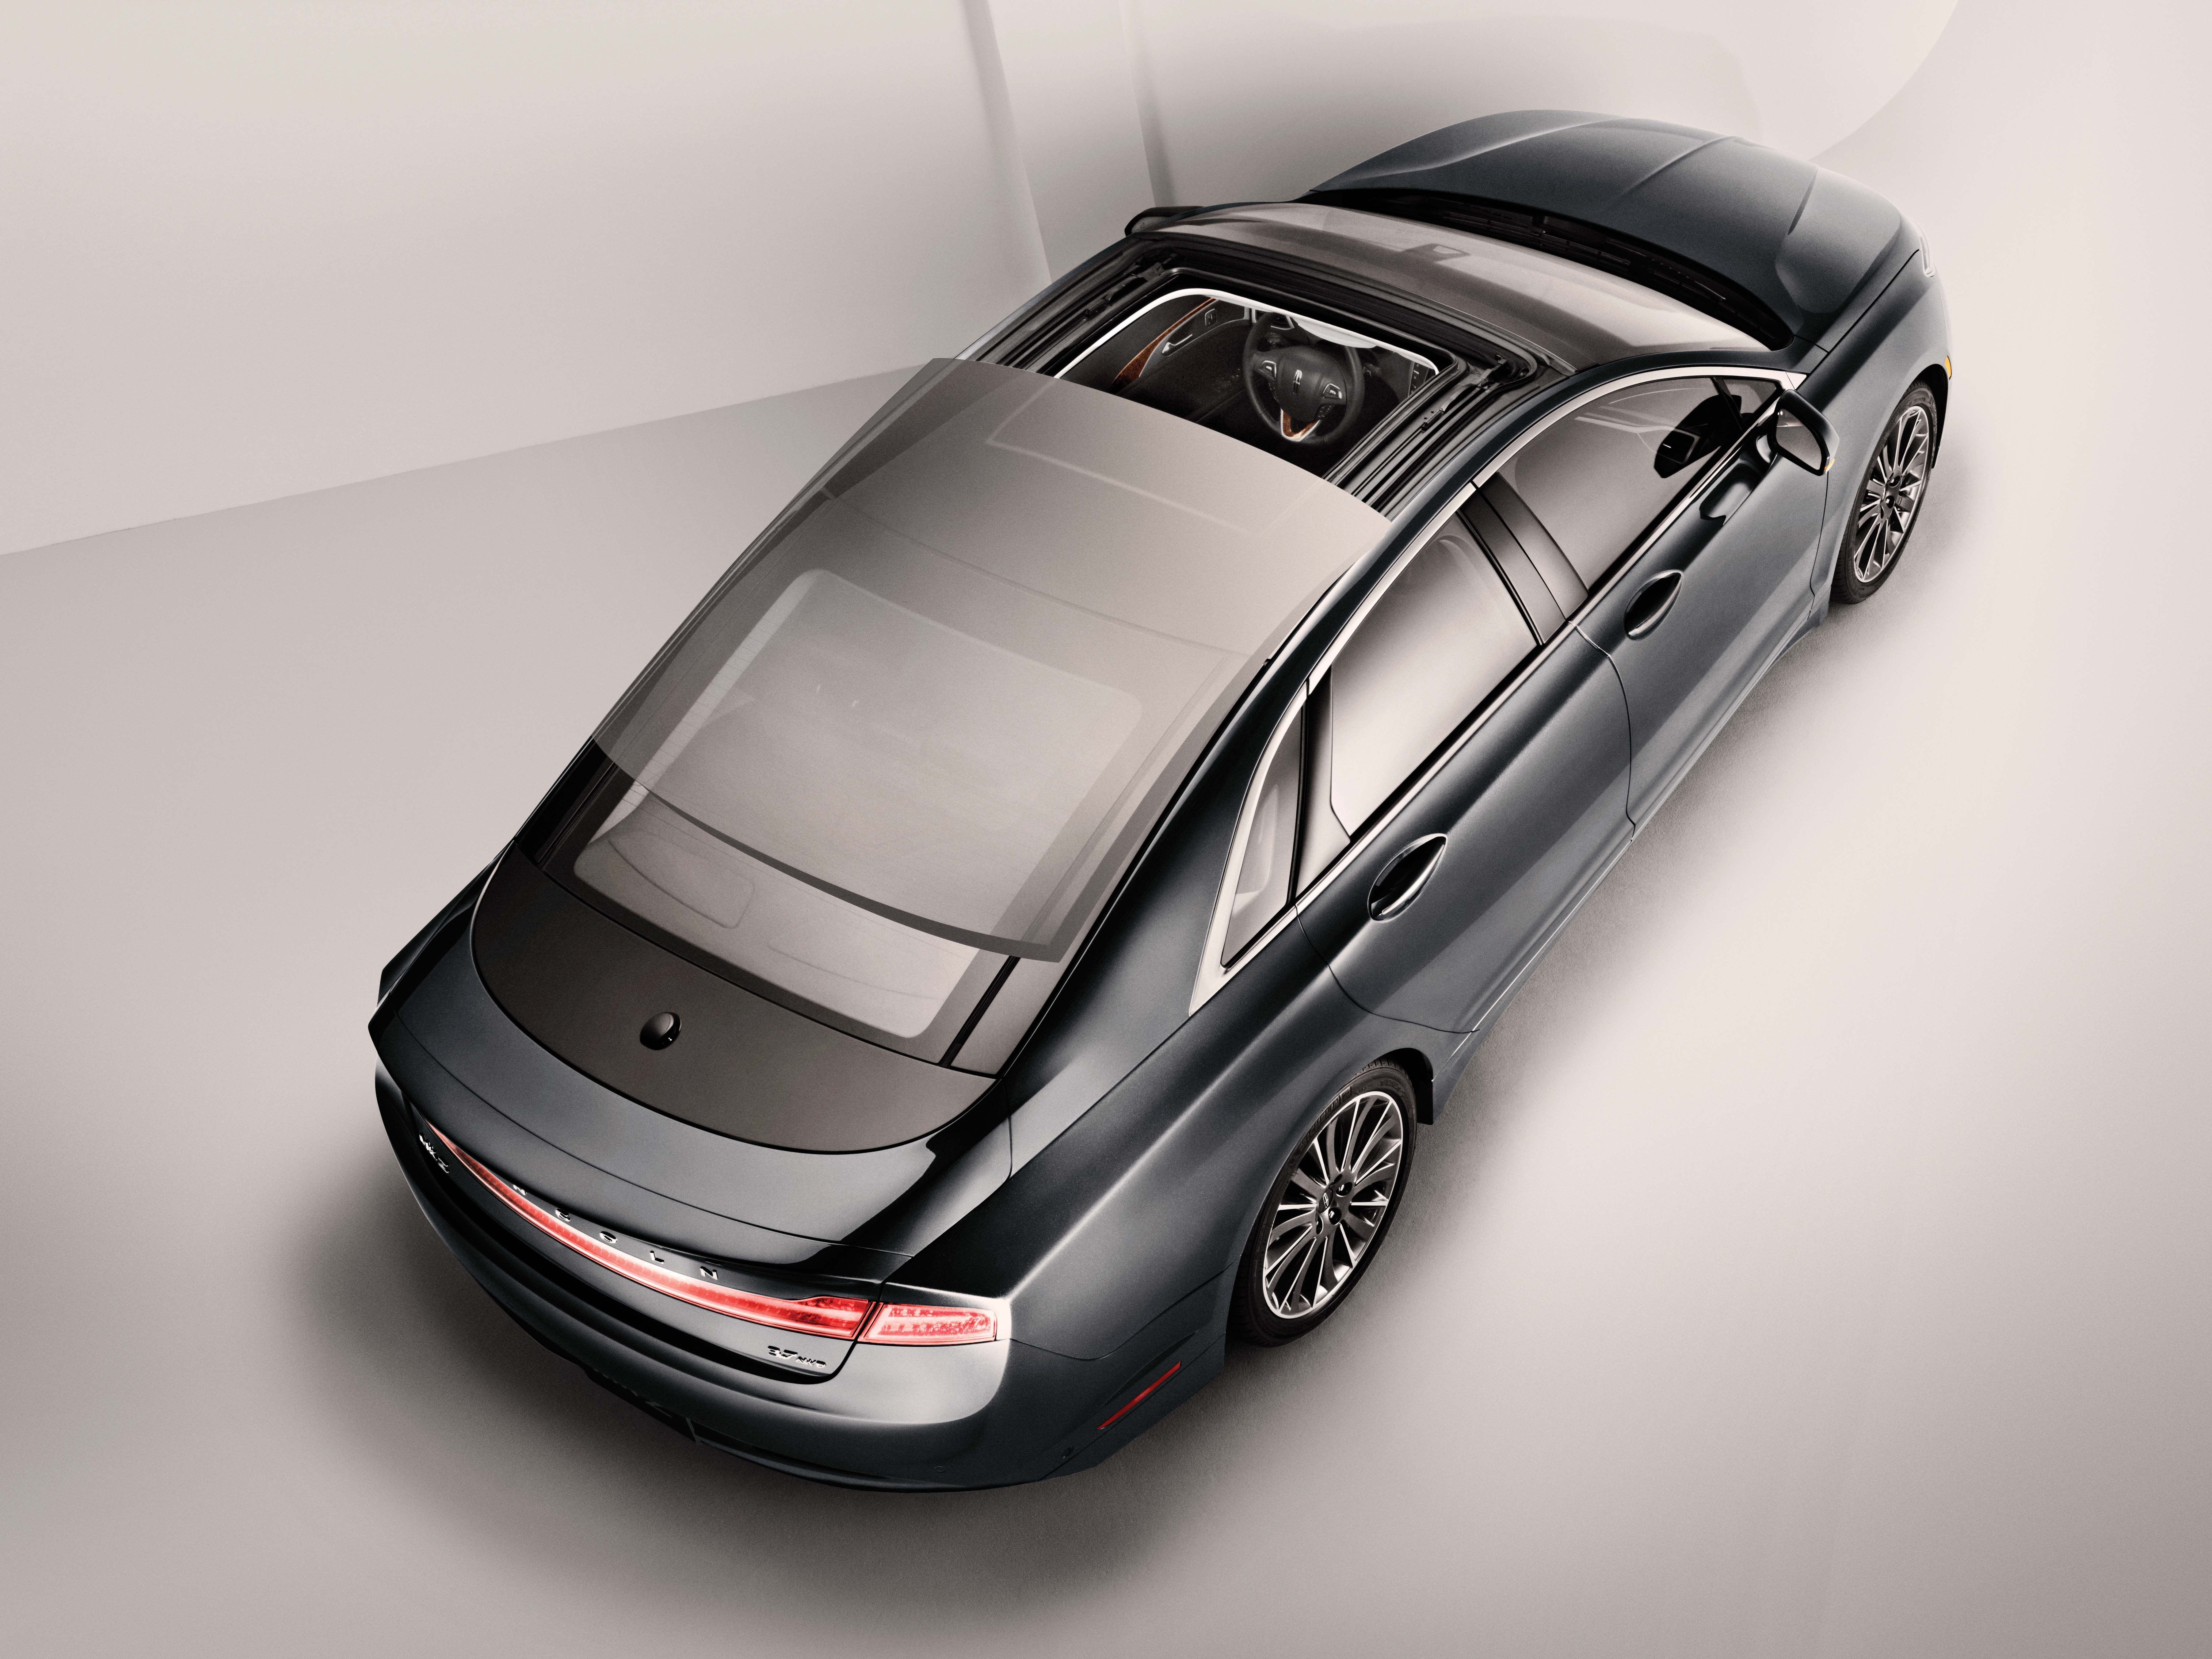 Lincolnmkz Hero Panoramic Roof Lincoln Auto Cars Car Drive